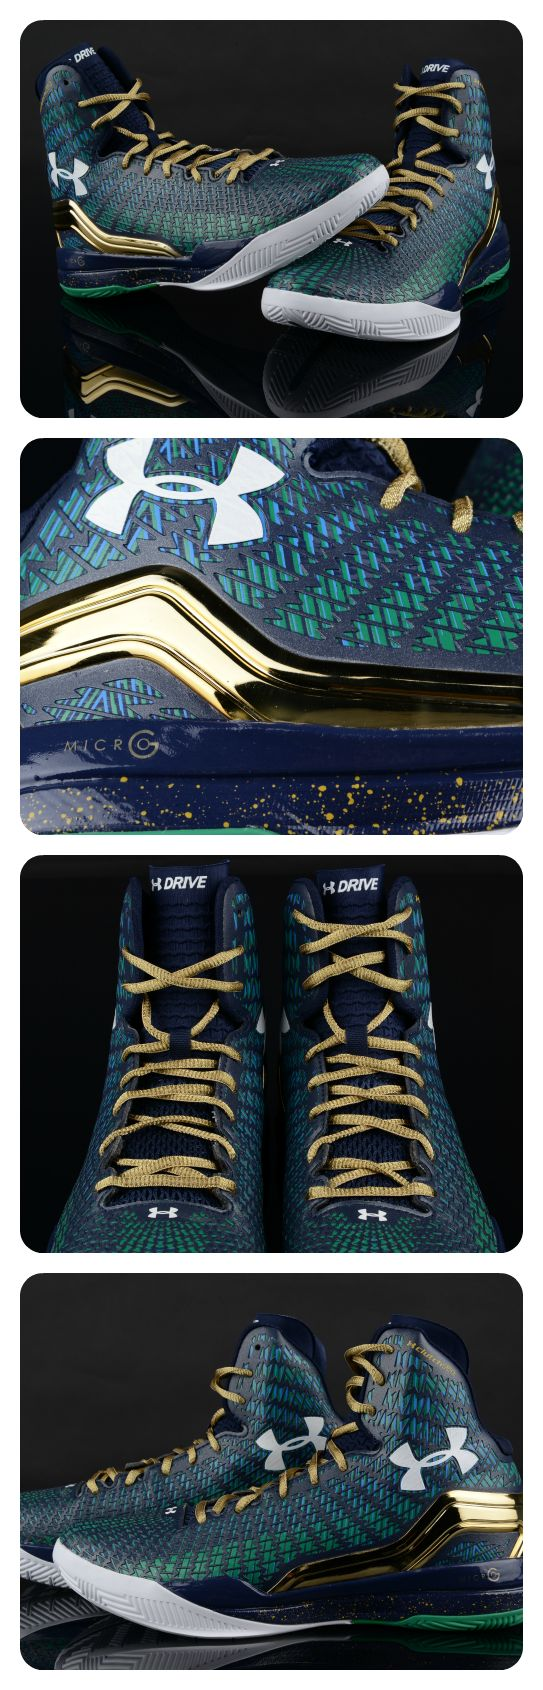 Under Armour Clutchfit Drive Midnight Navy/Kelly Green colorway.